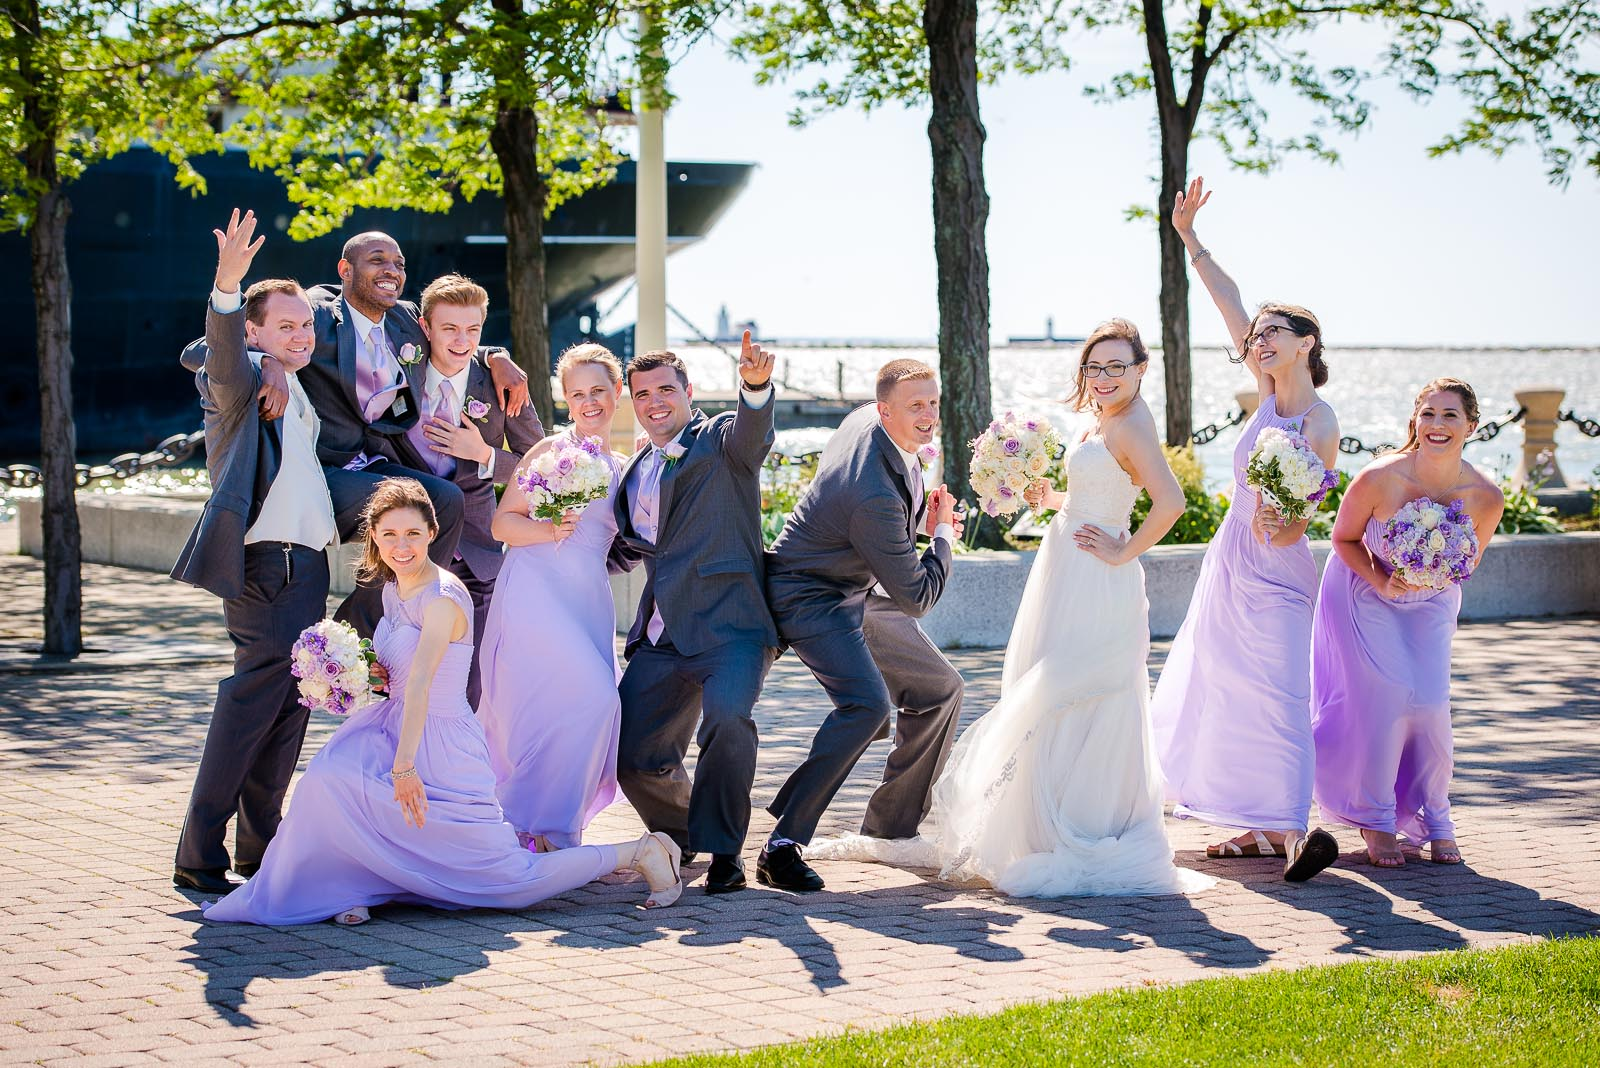 Eric_and_Christy_Photography_Blog_Julie_Adam_Wedding-17